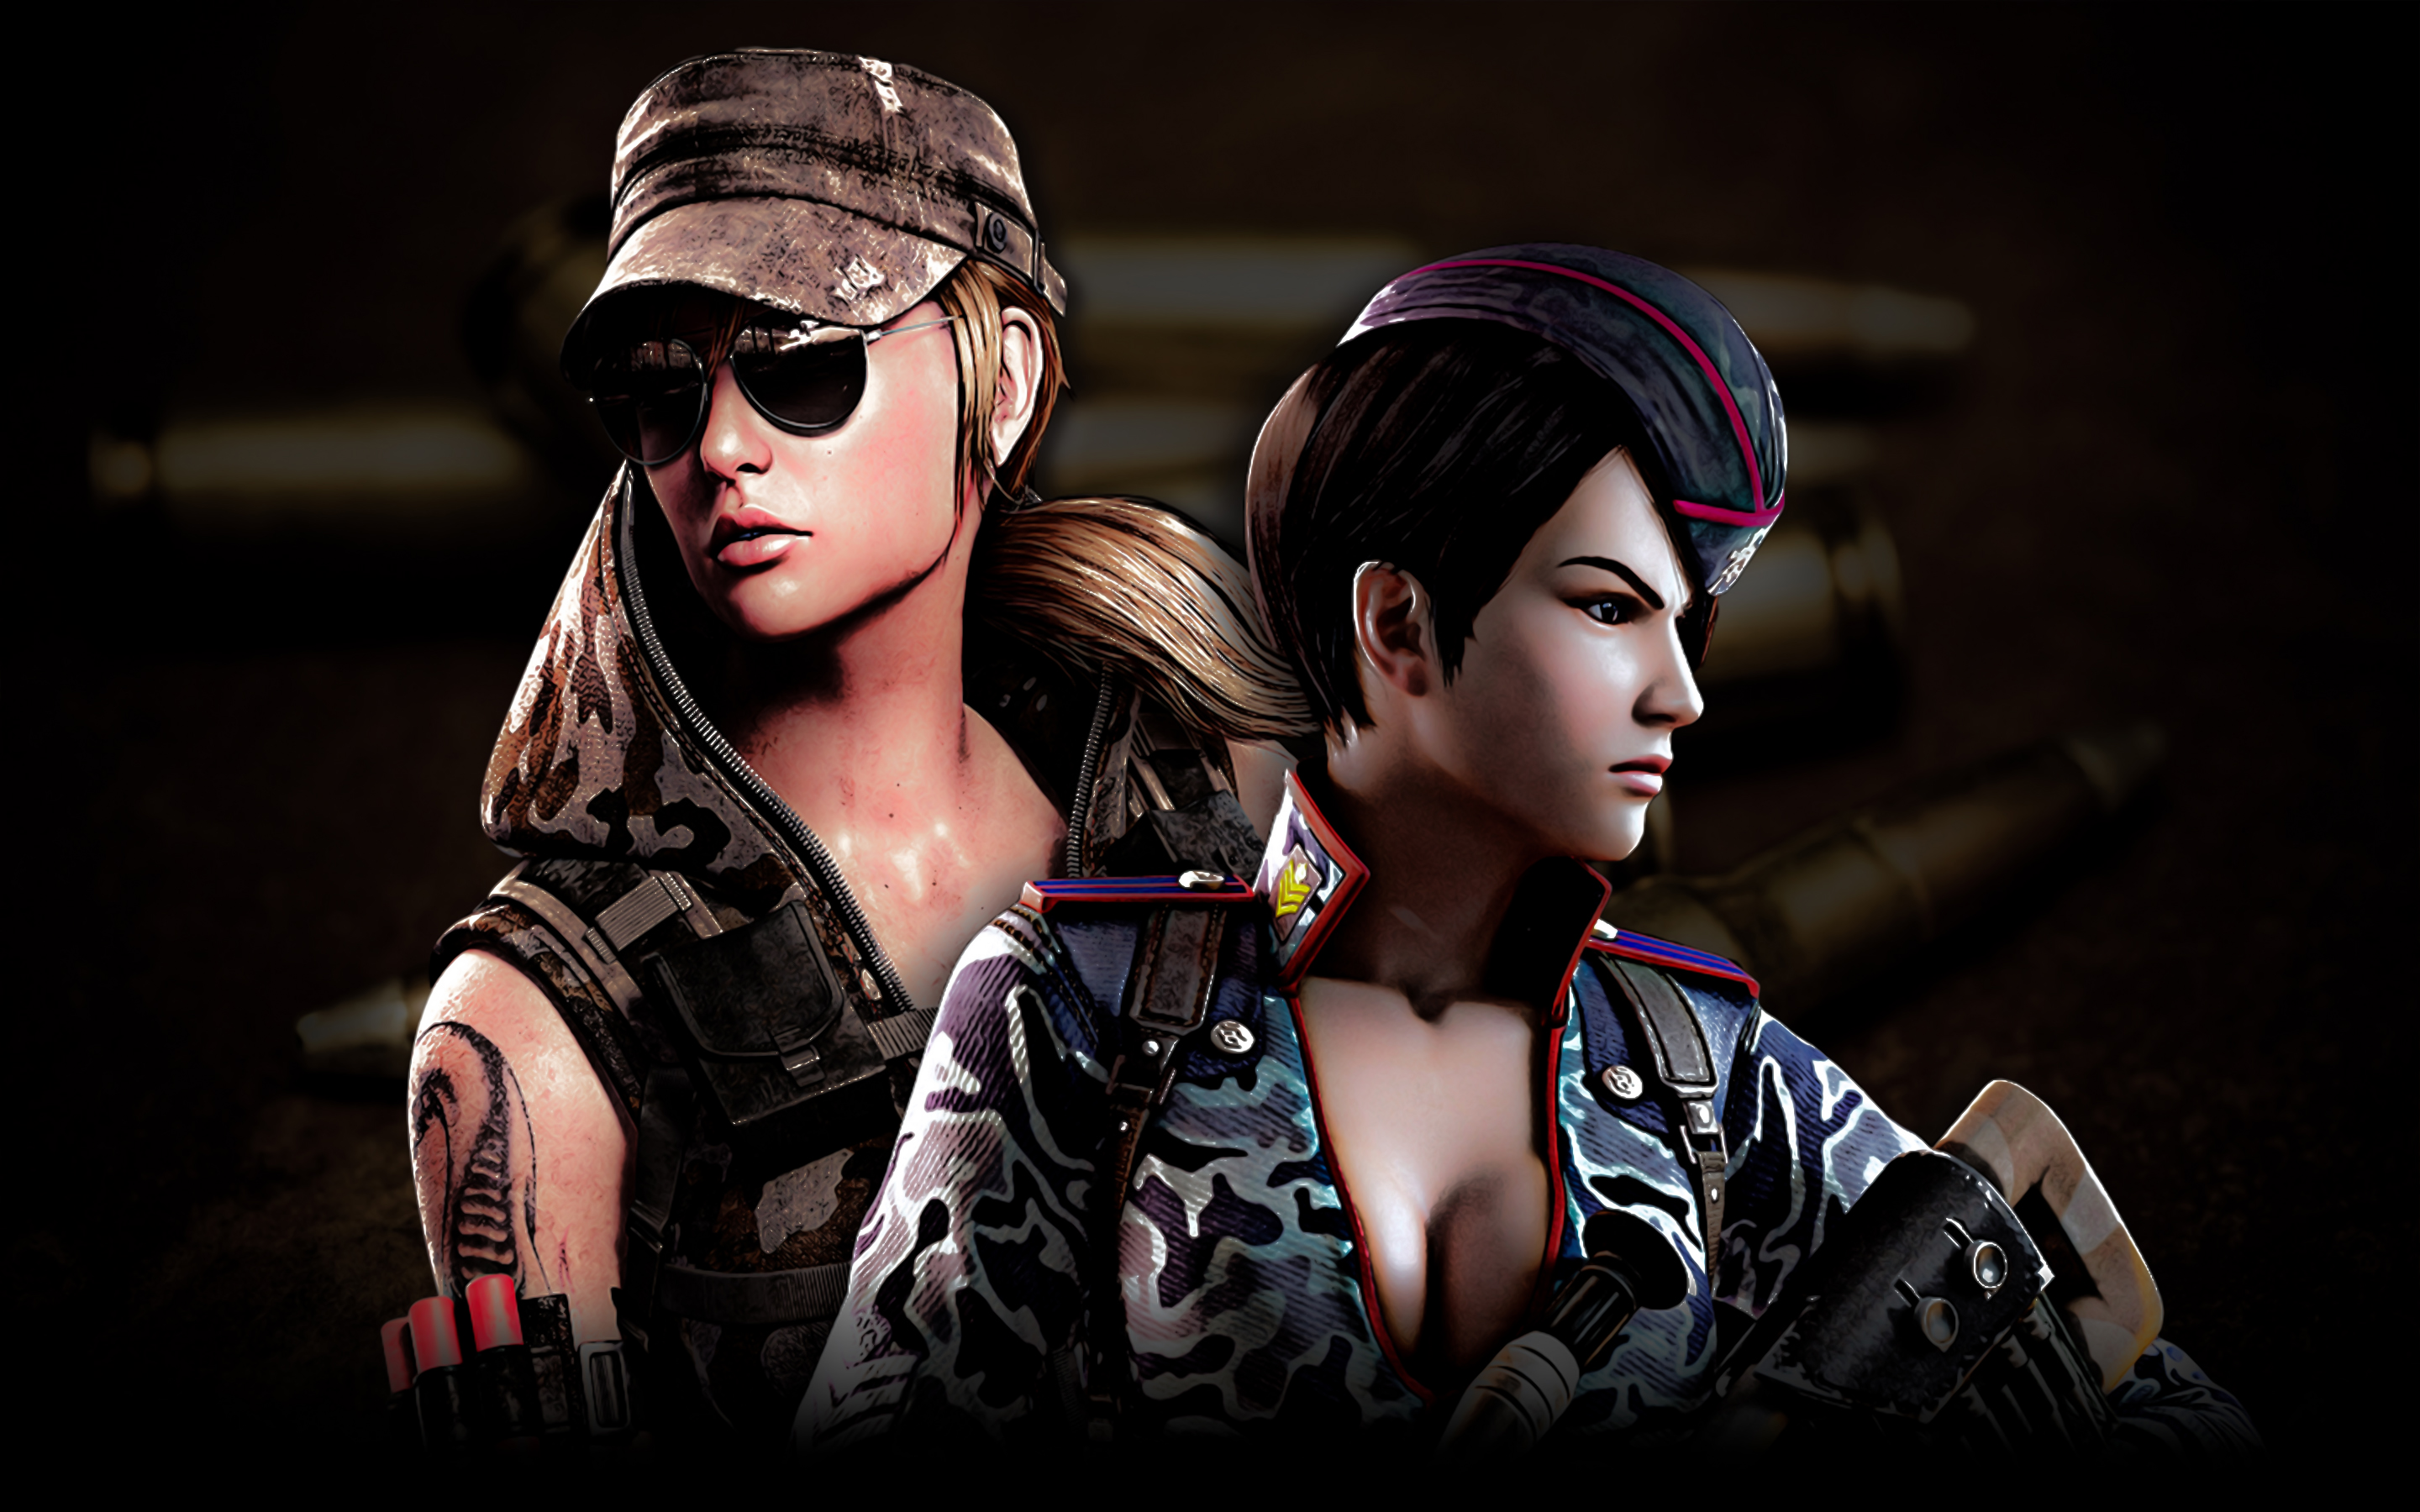 Point Blank Wallpaper - Viper And Hide by TheDamDamBW12